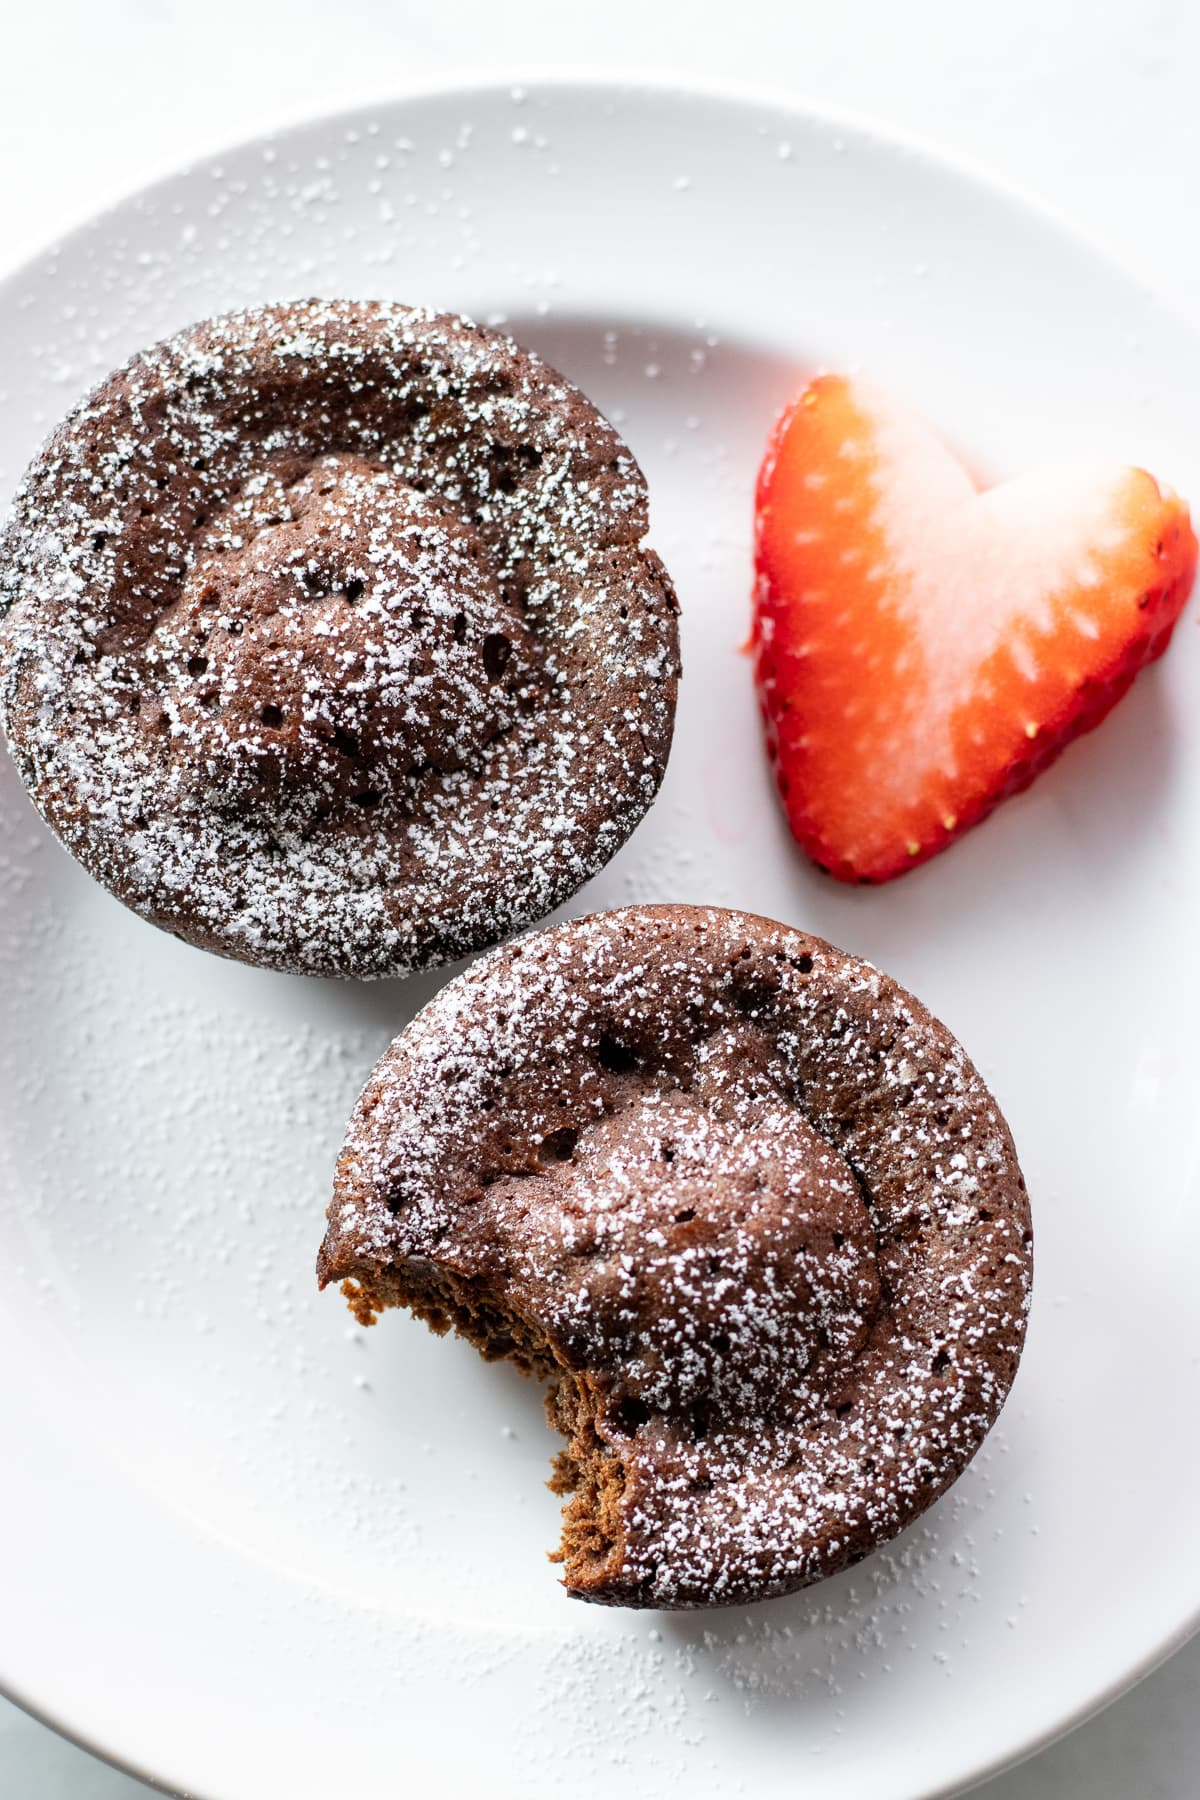 Two mini chocolate cakes on a plate with a heart-shaped strawberry slice.